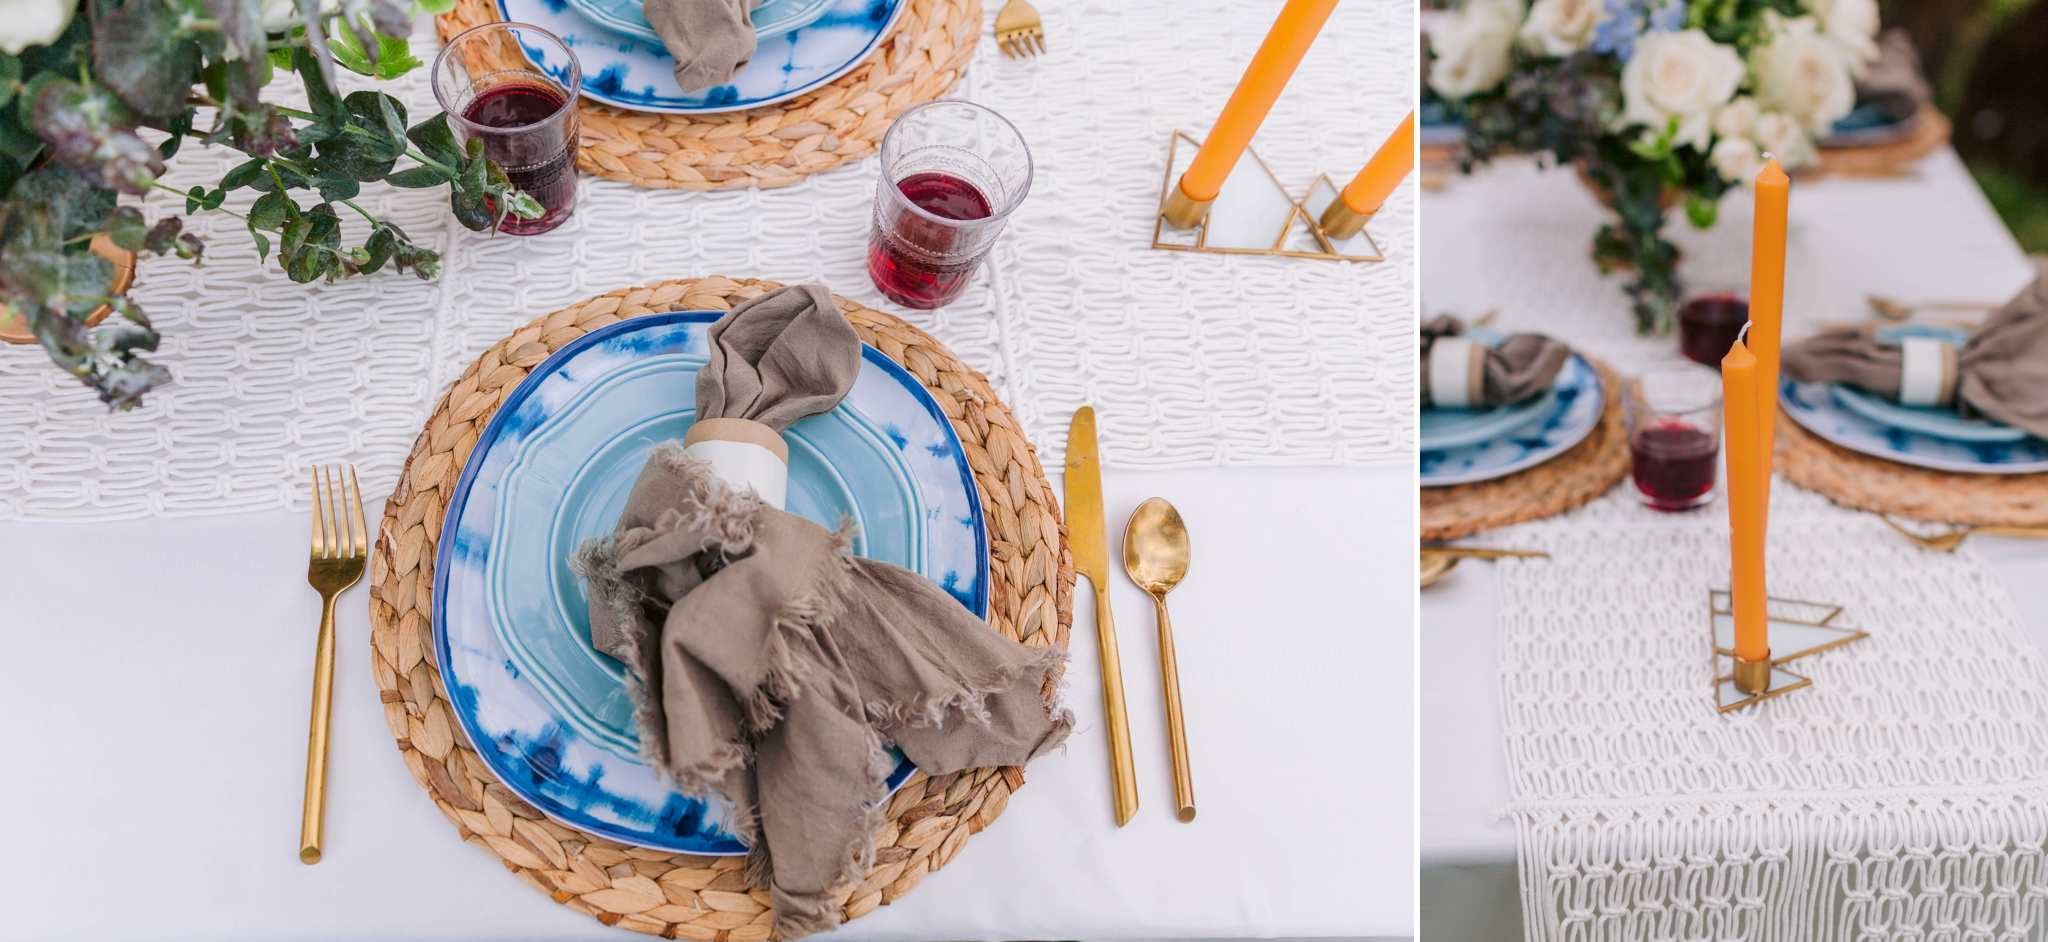 Table set up with gold flatware and blue plates - Ana + Elijah - Wedding at Loulu Palm in Haleiwa, HI - Oahu Hawaii Wedding Photographer